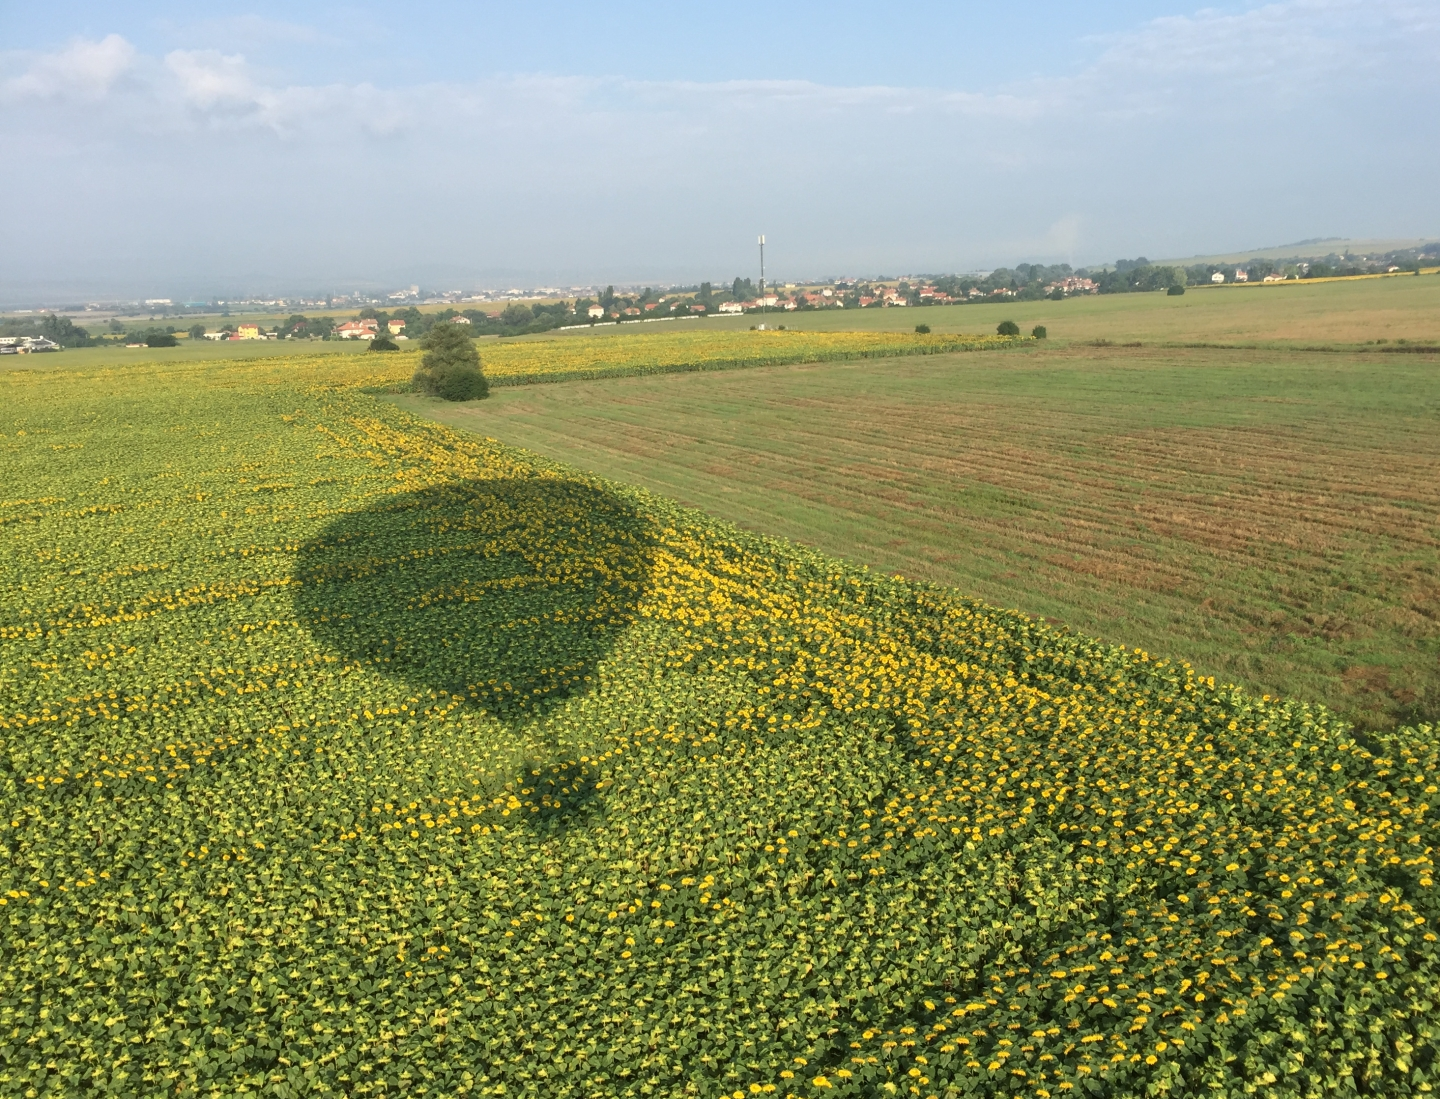 hot air balloon shadow over sunflower field